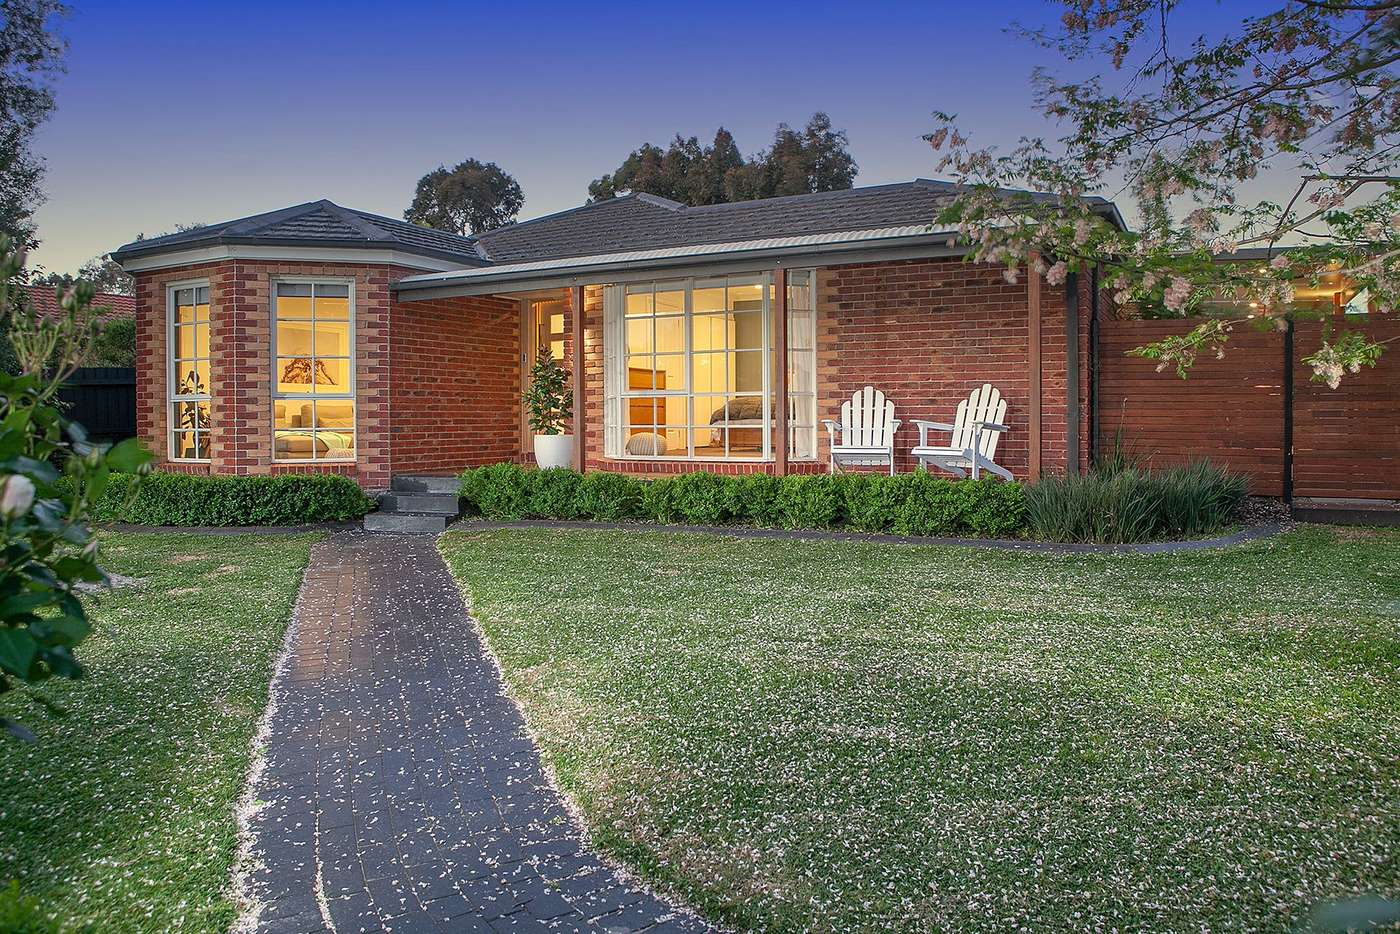 Main view of Homely house listing, 32 Cotoneaster Way, Langwarrin VIC 3910